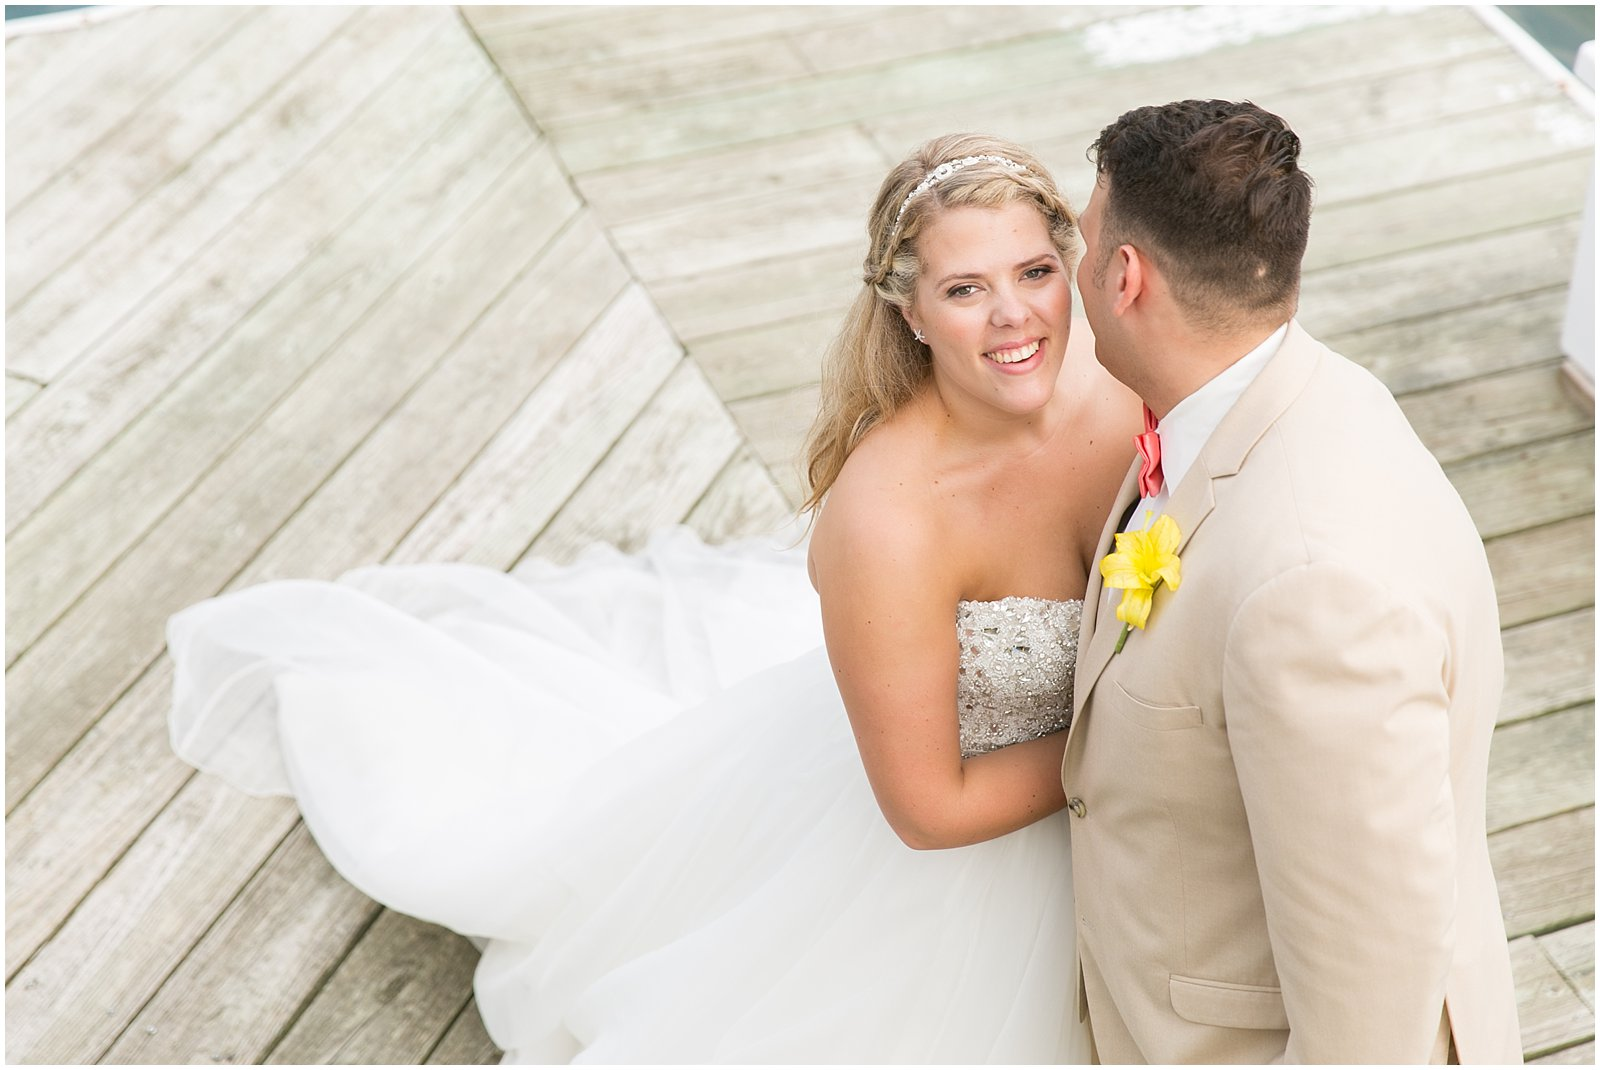 jessica_ryan_photography_wedding_virginia_beach_virginia_wedding_photographer_candid_wedding_photography_lifestyle_photojournalistic_real_moments_0113